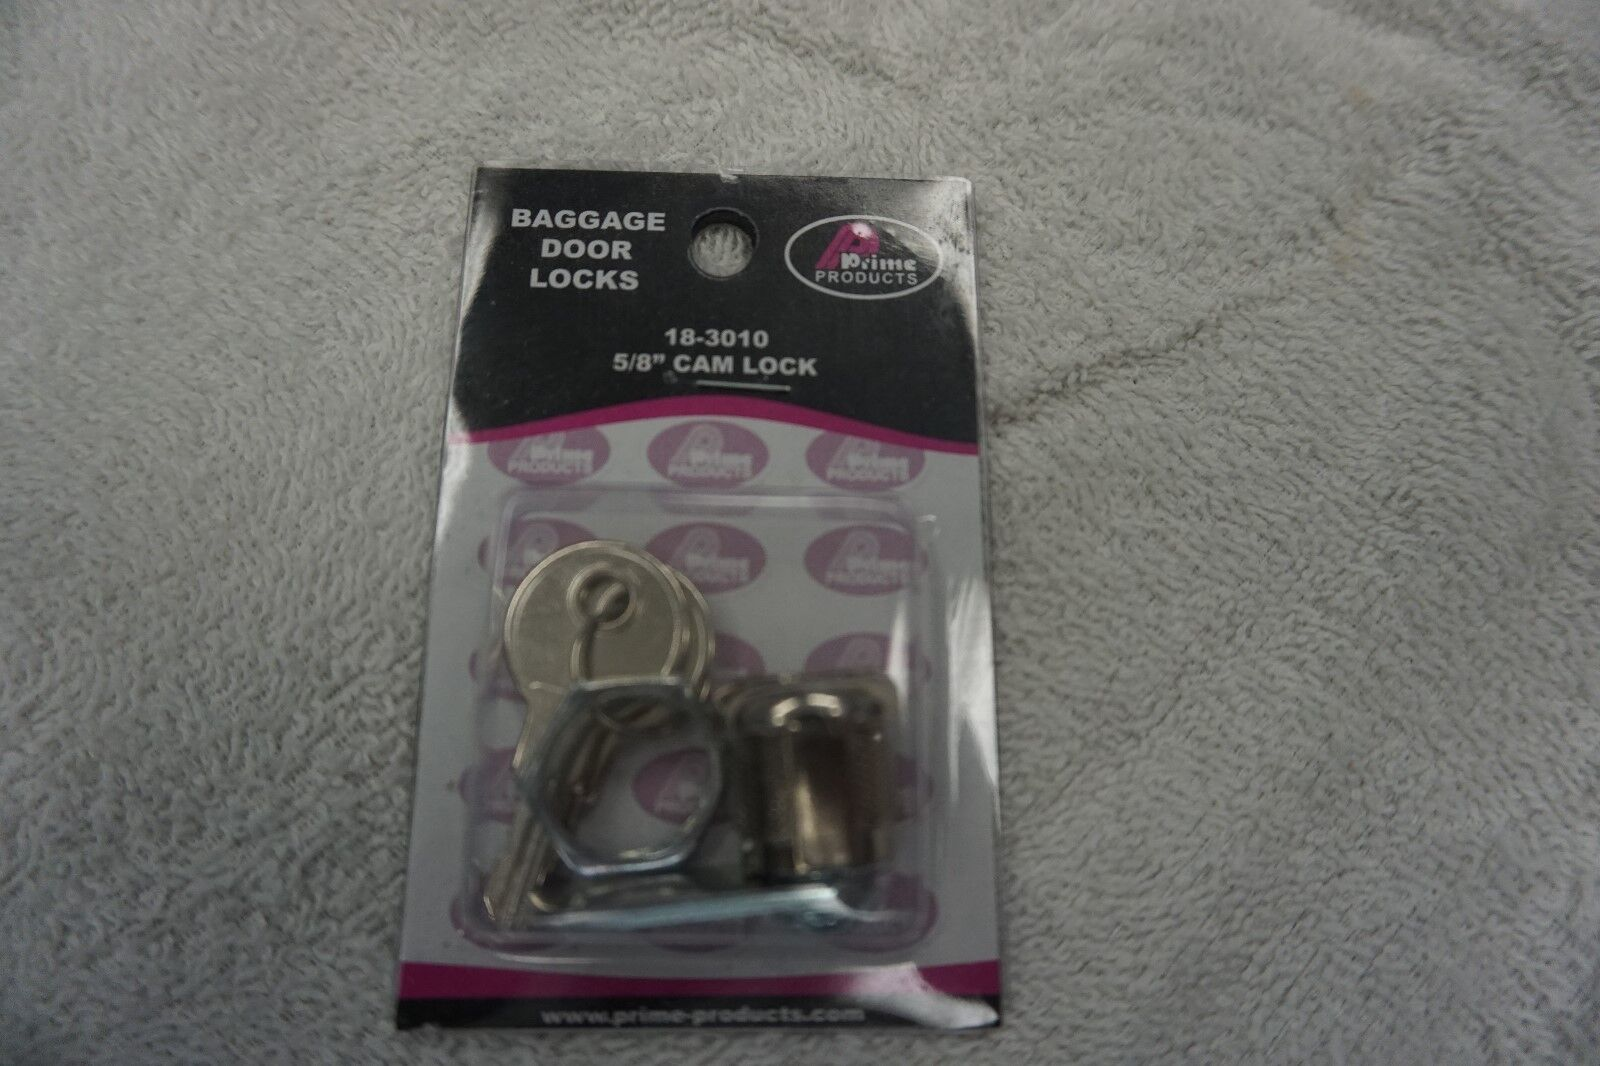 """PRIME PRODUCTS 5/8"""" STANDARD KEY CAM LOCK 18-3010"""